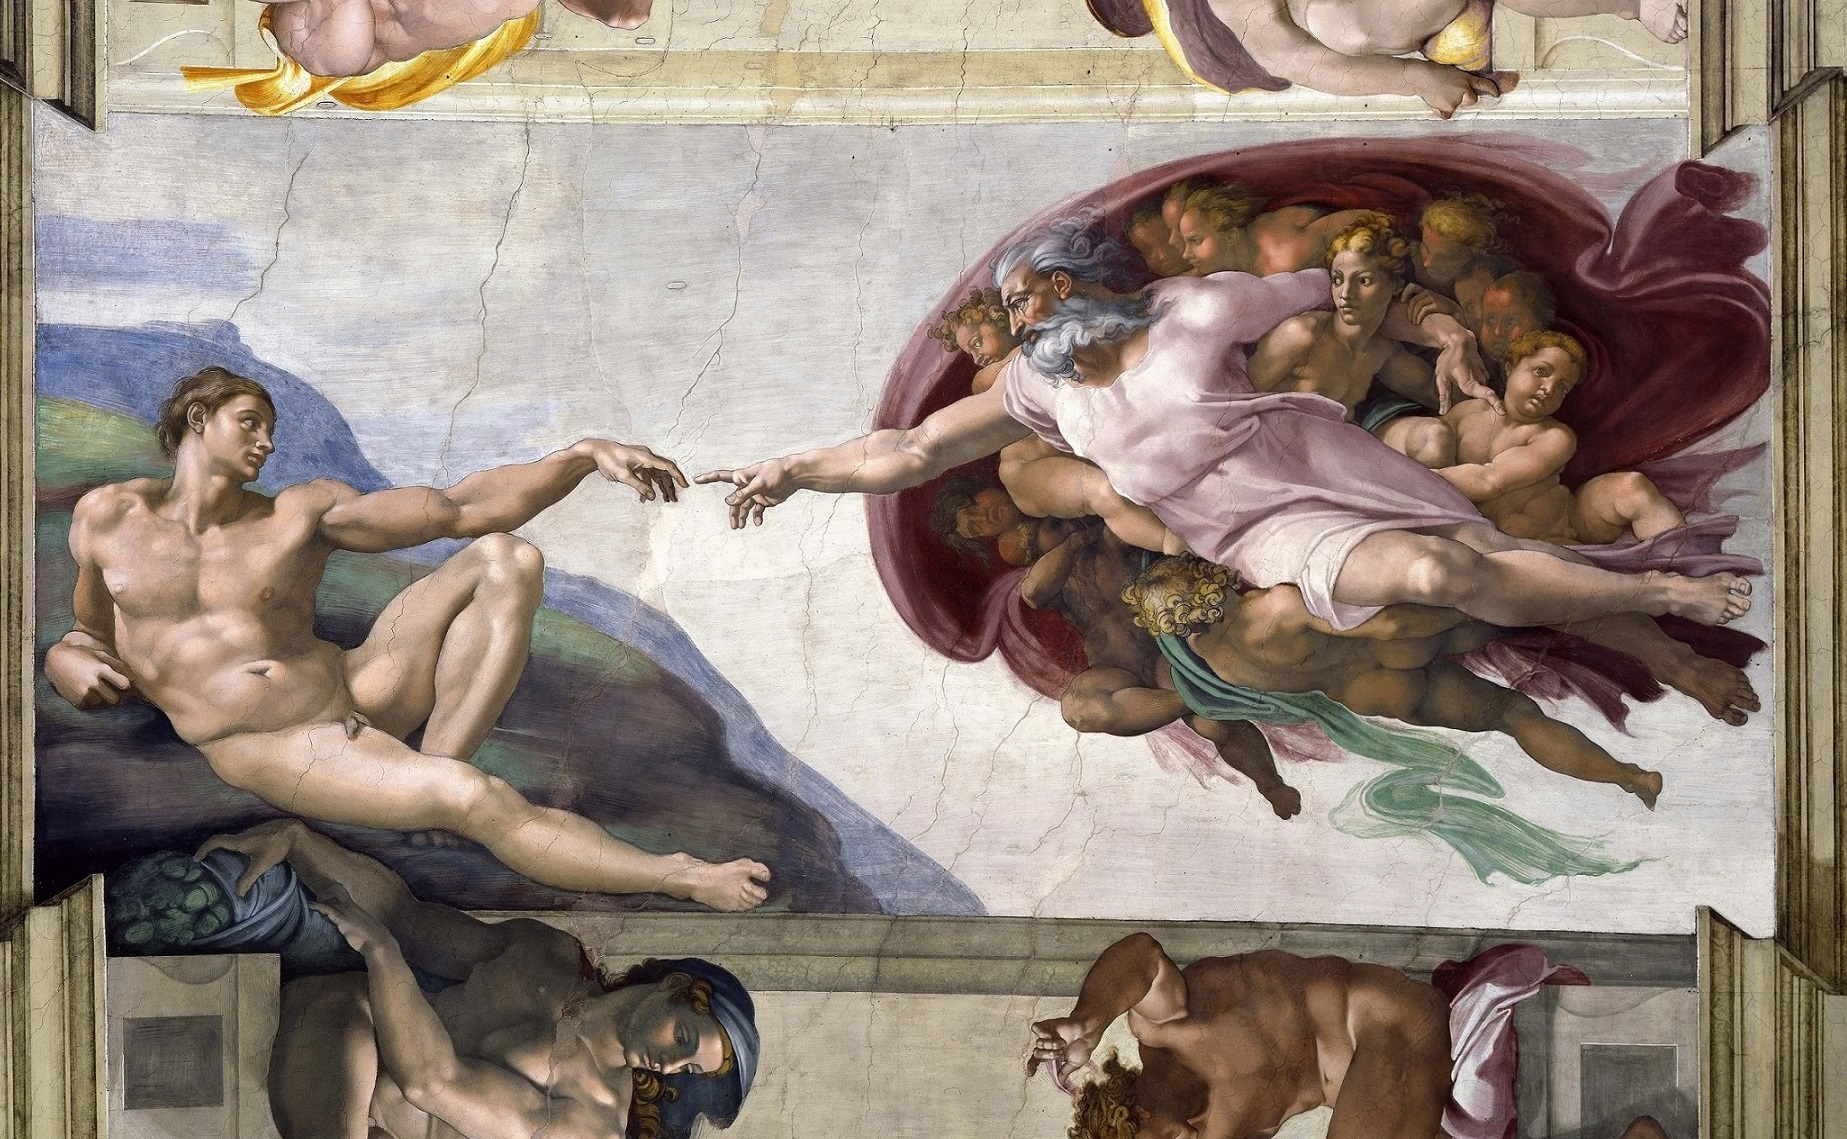 The Creation of Adam by Michelangelo.